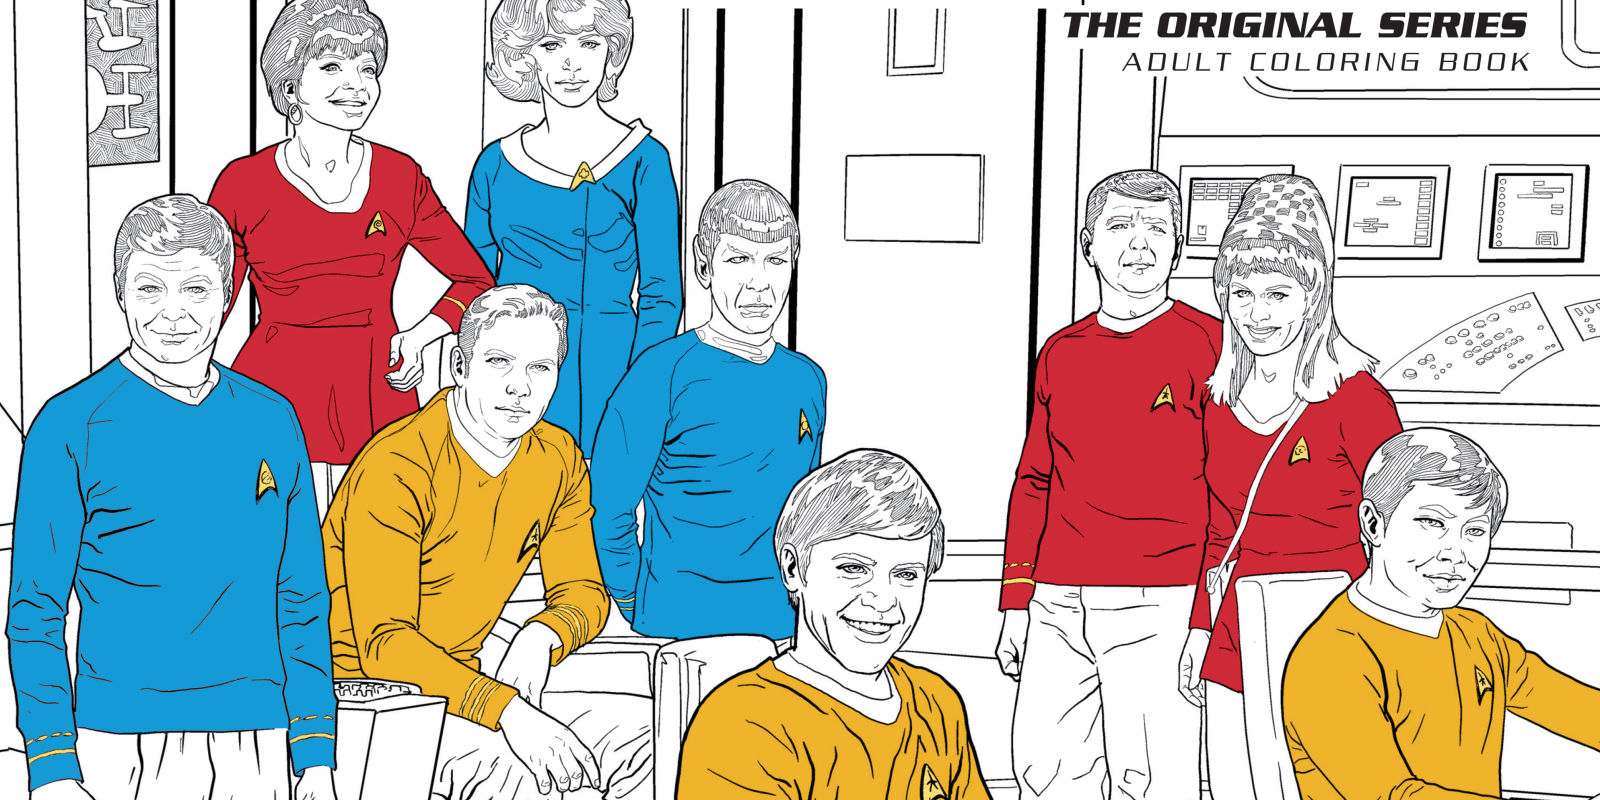 Star trek themed adult coloring books will be available Best colouring books for adults 2018